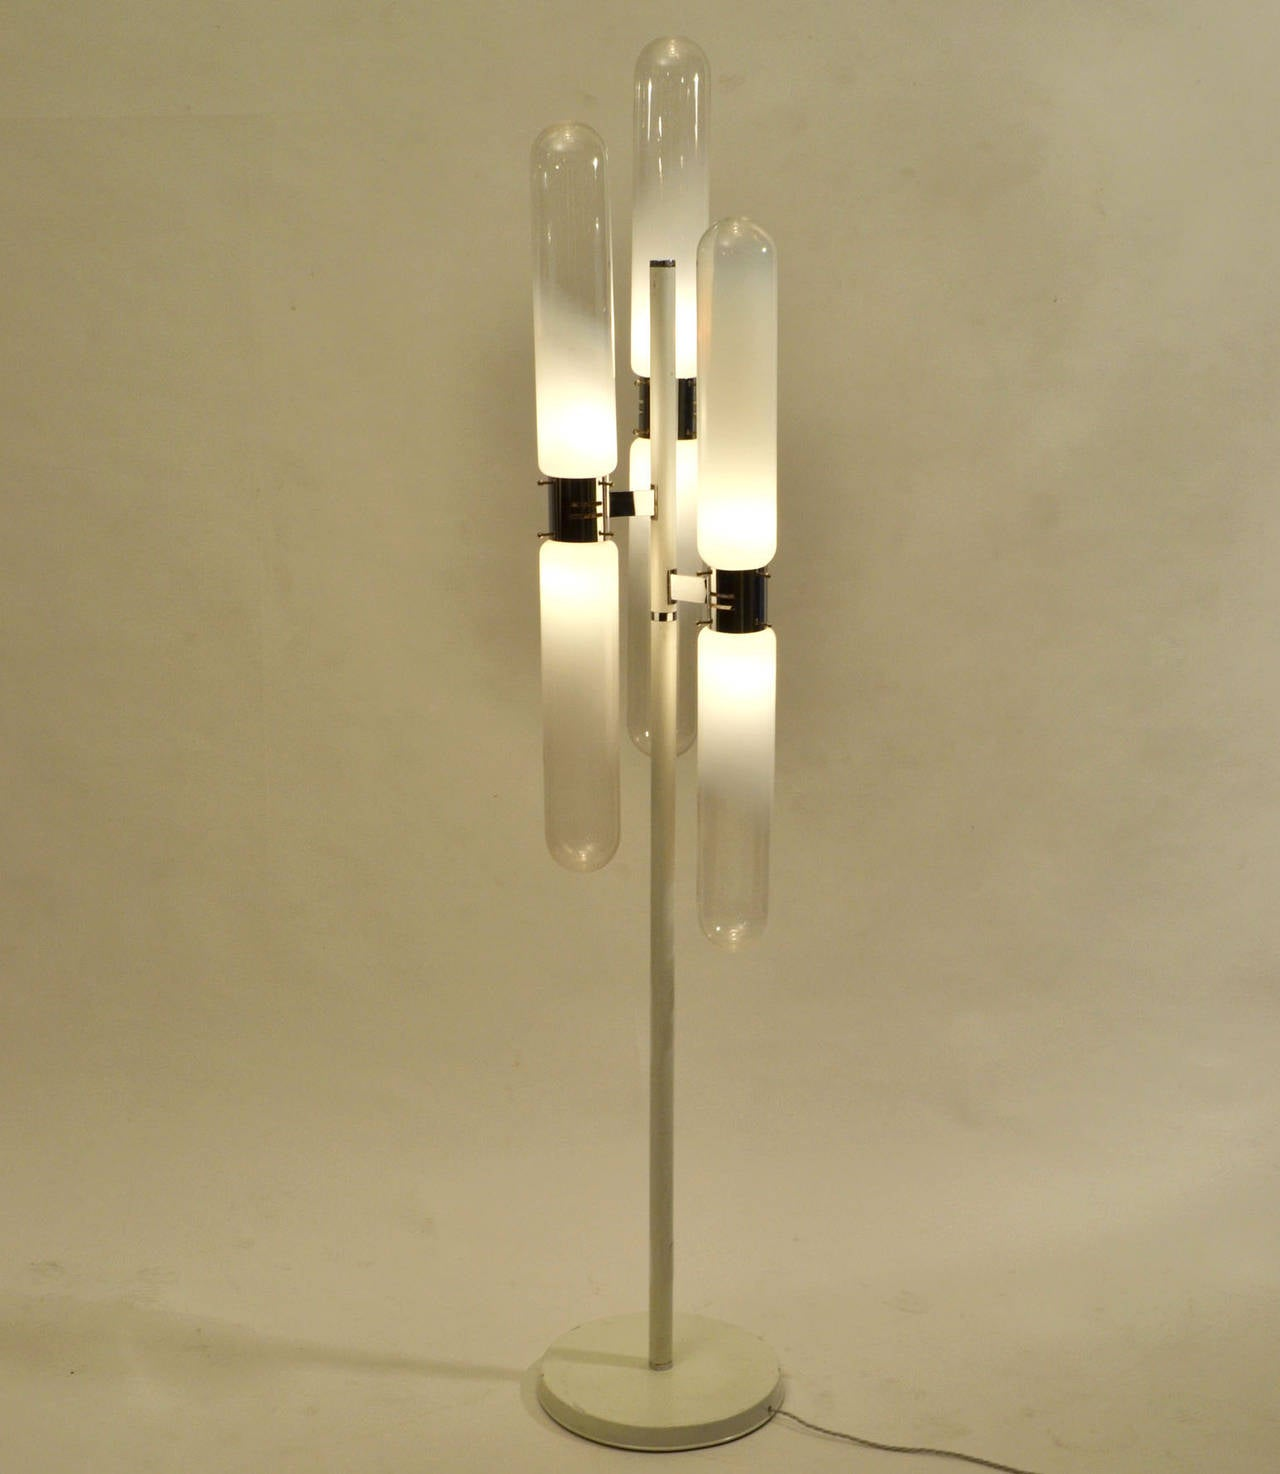 Mid-Century Modern Sculptural Floor Lamp with Murano Glass by Carlo Nason for Mazzega For Sale